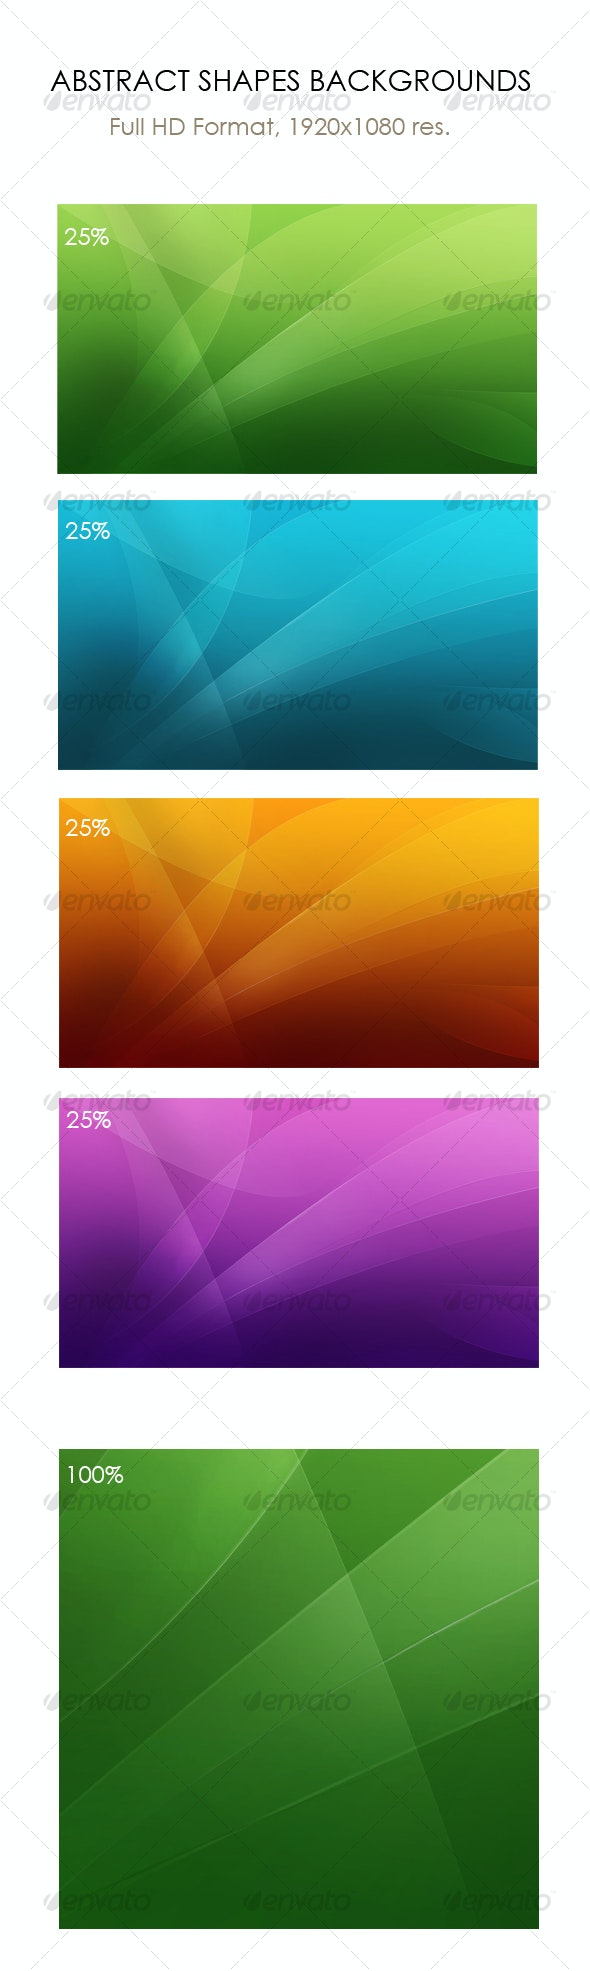 Abstract shapes backgrounds, wallpapers (Full HD) - Backgrounds Graphics